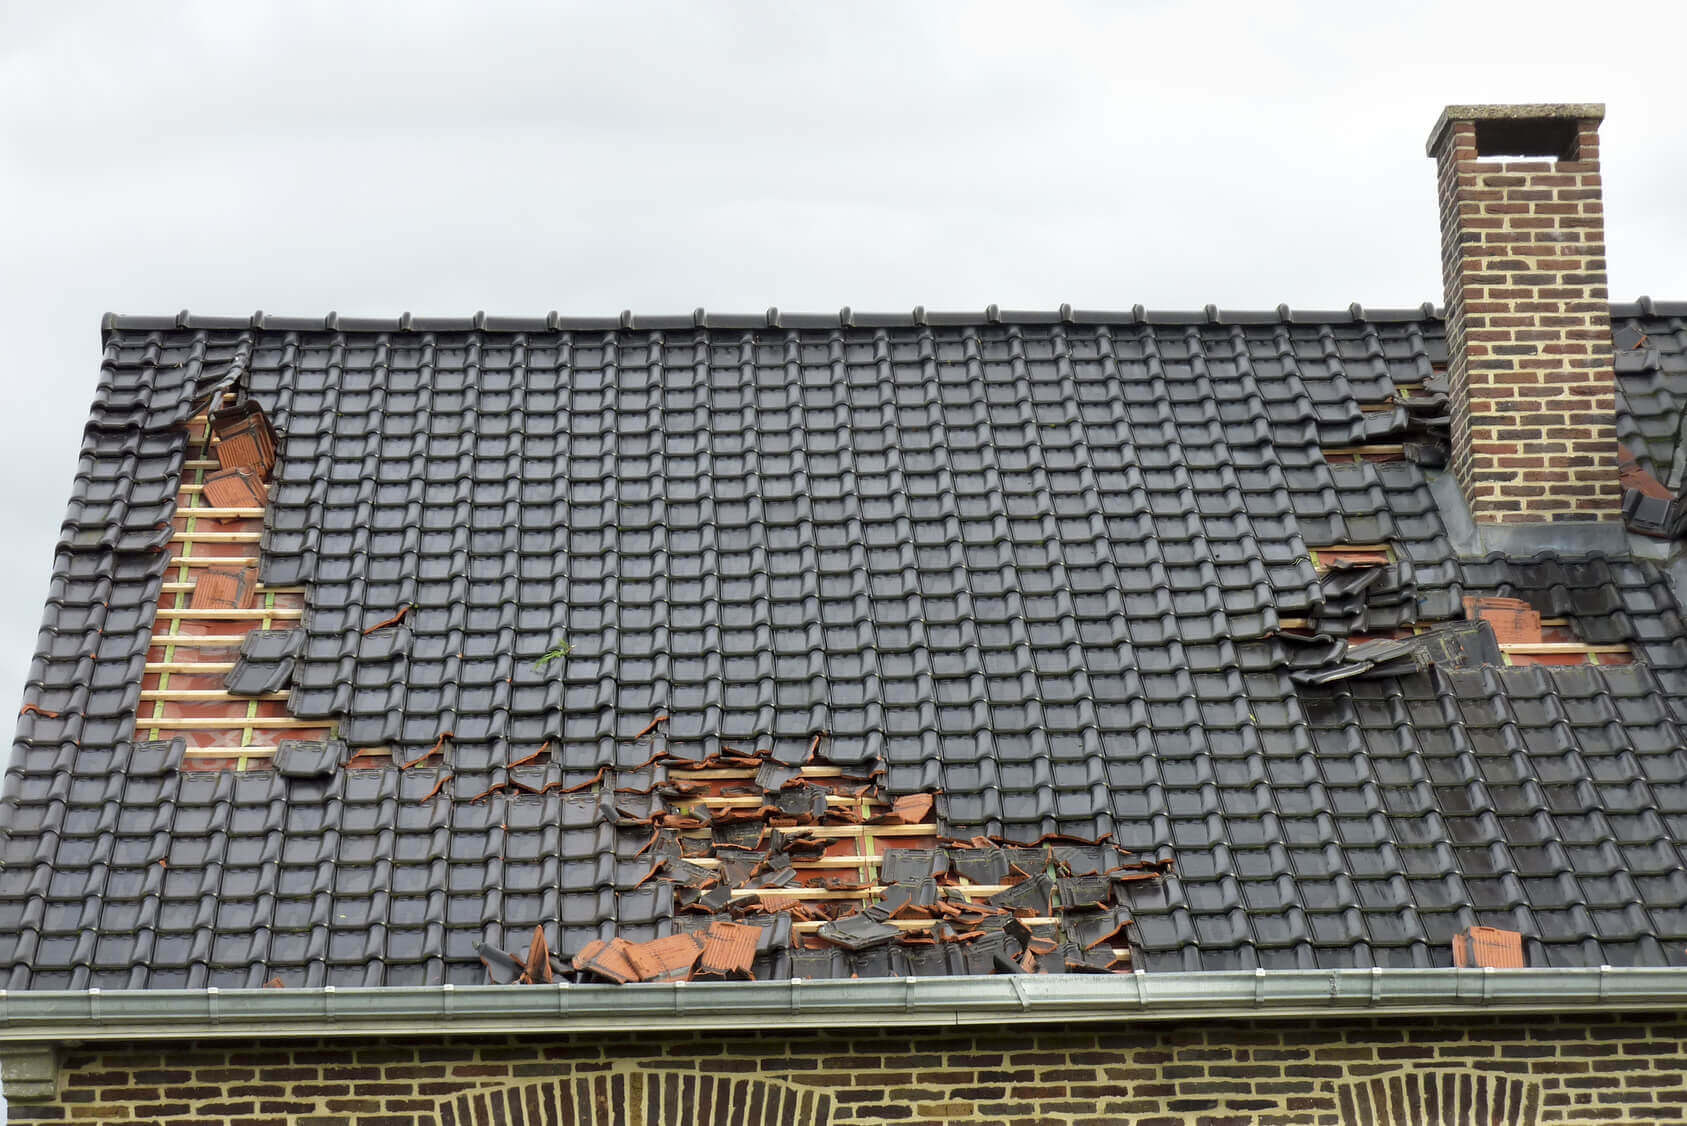 search for an emergency roof repair near me when your shingles look like this